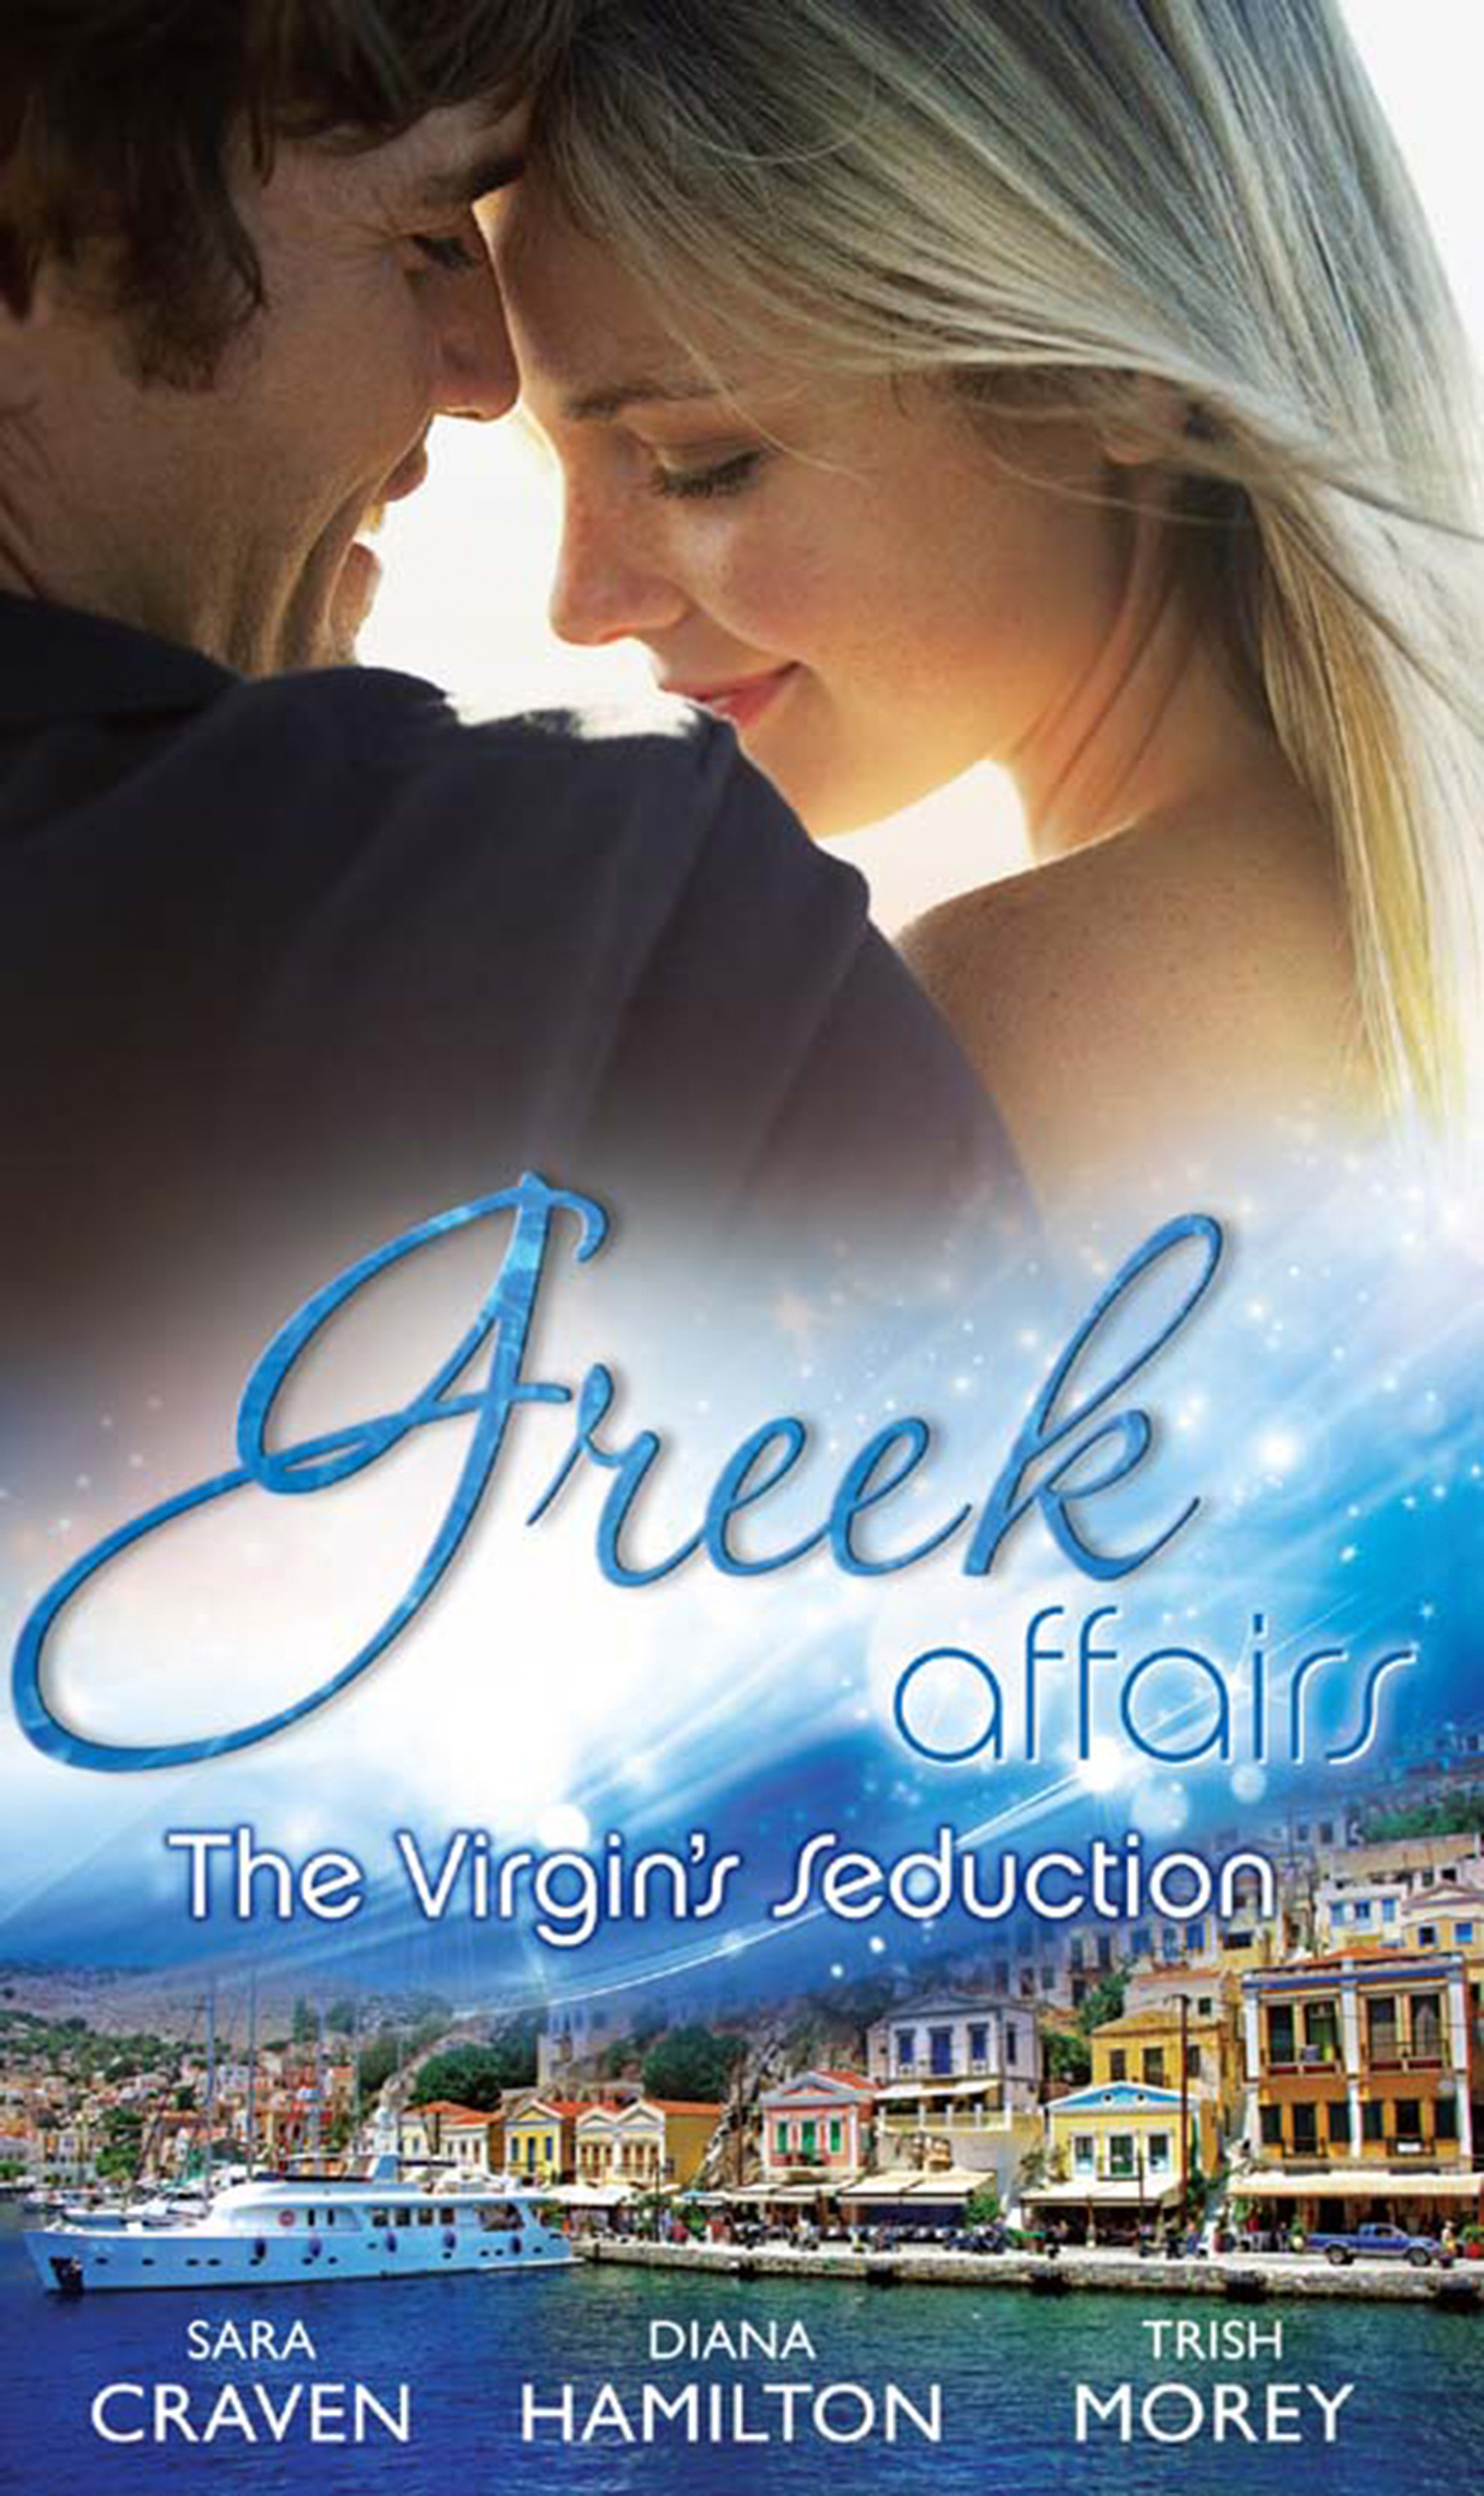 Greek Affairs: The Virgin's Seduction